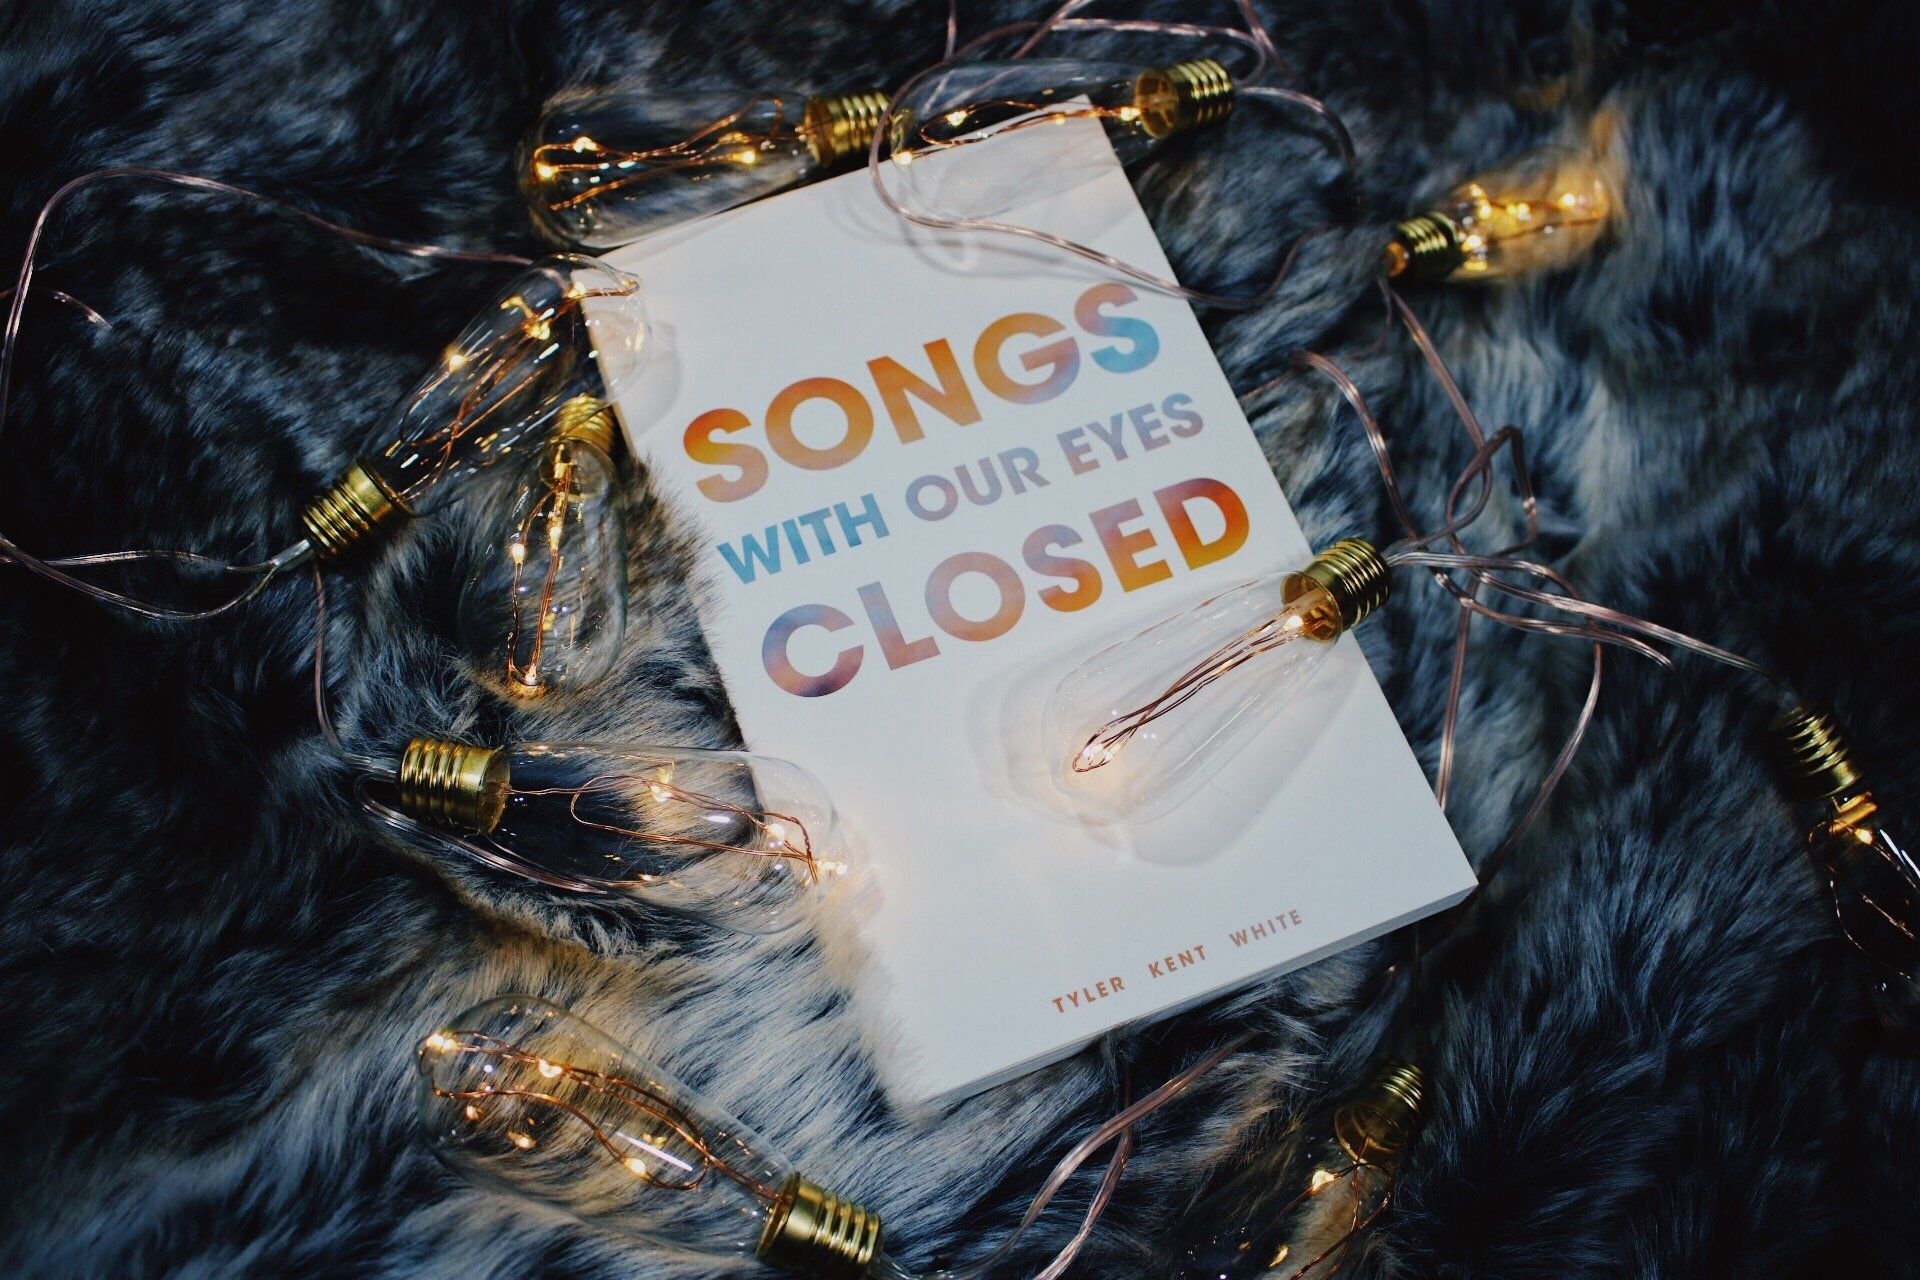 Songs With Our Eyes Closed - Unsigned | Songs, Barnes and ...